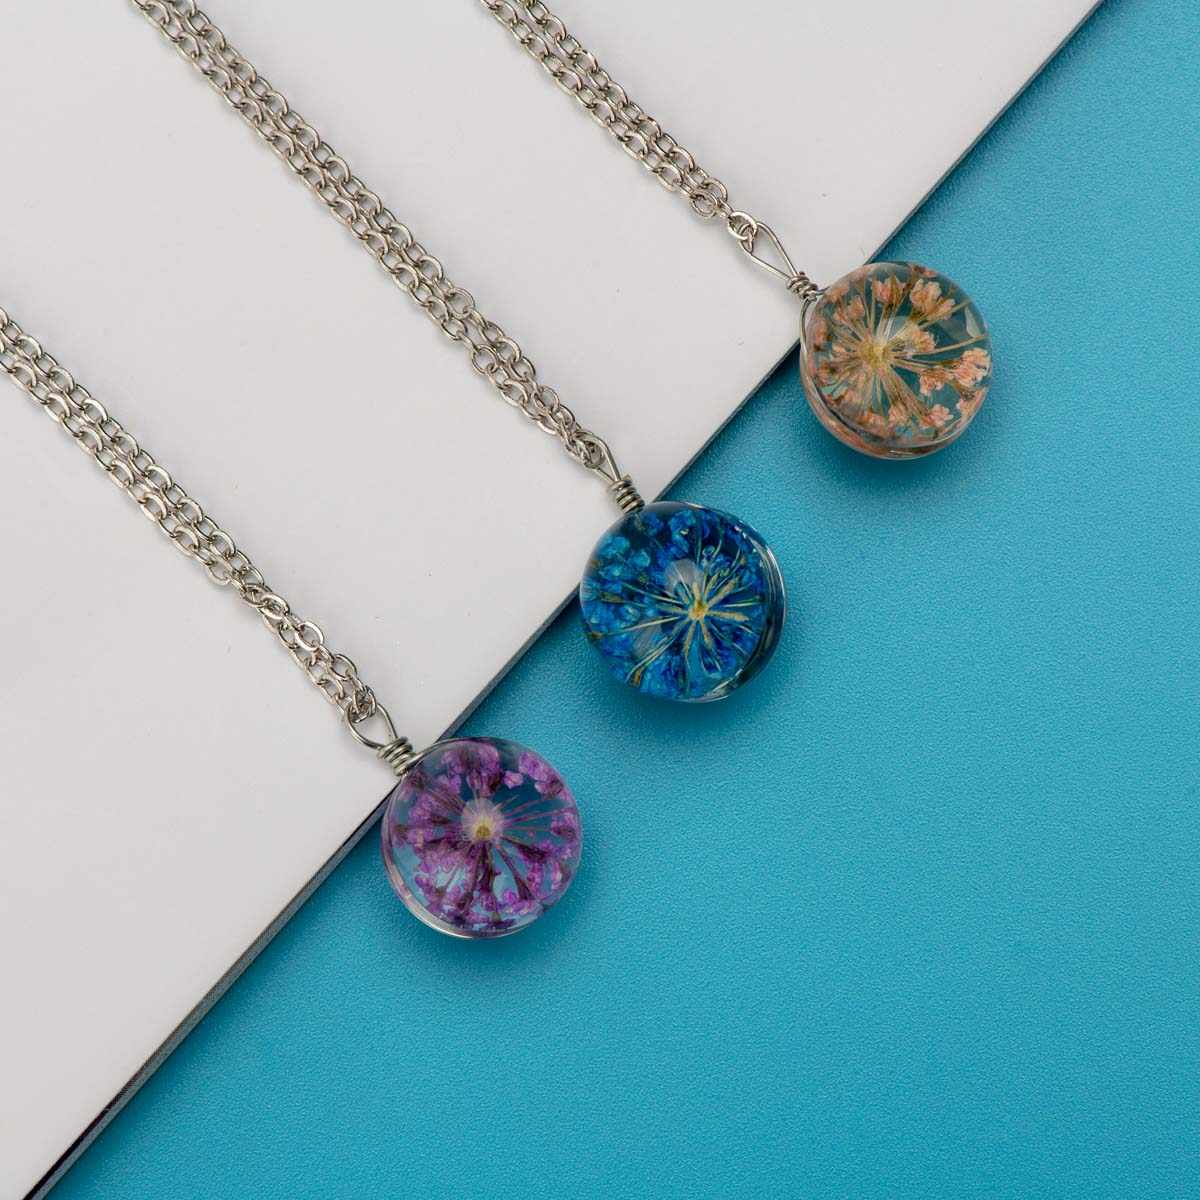 Flower Glass Chain Necklaces For Women Artware Pendants Memorial necklaces 1 PCS Free Shipping #DY307